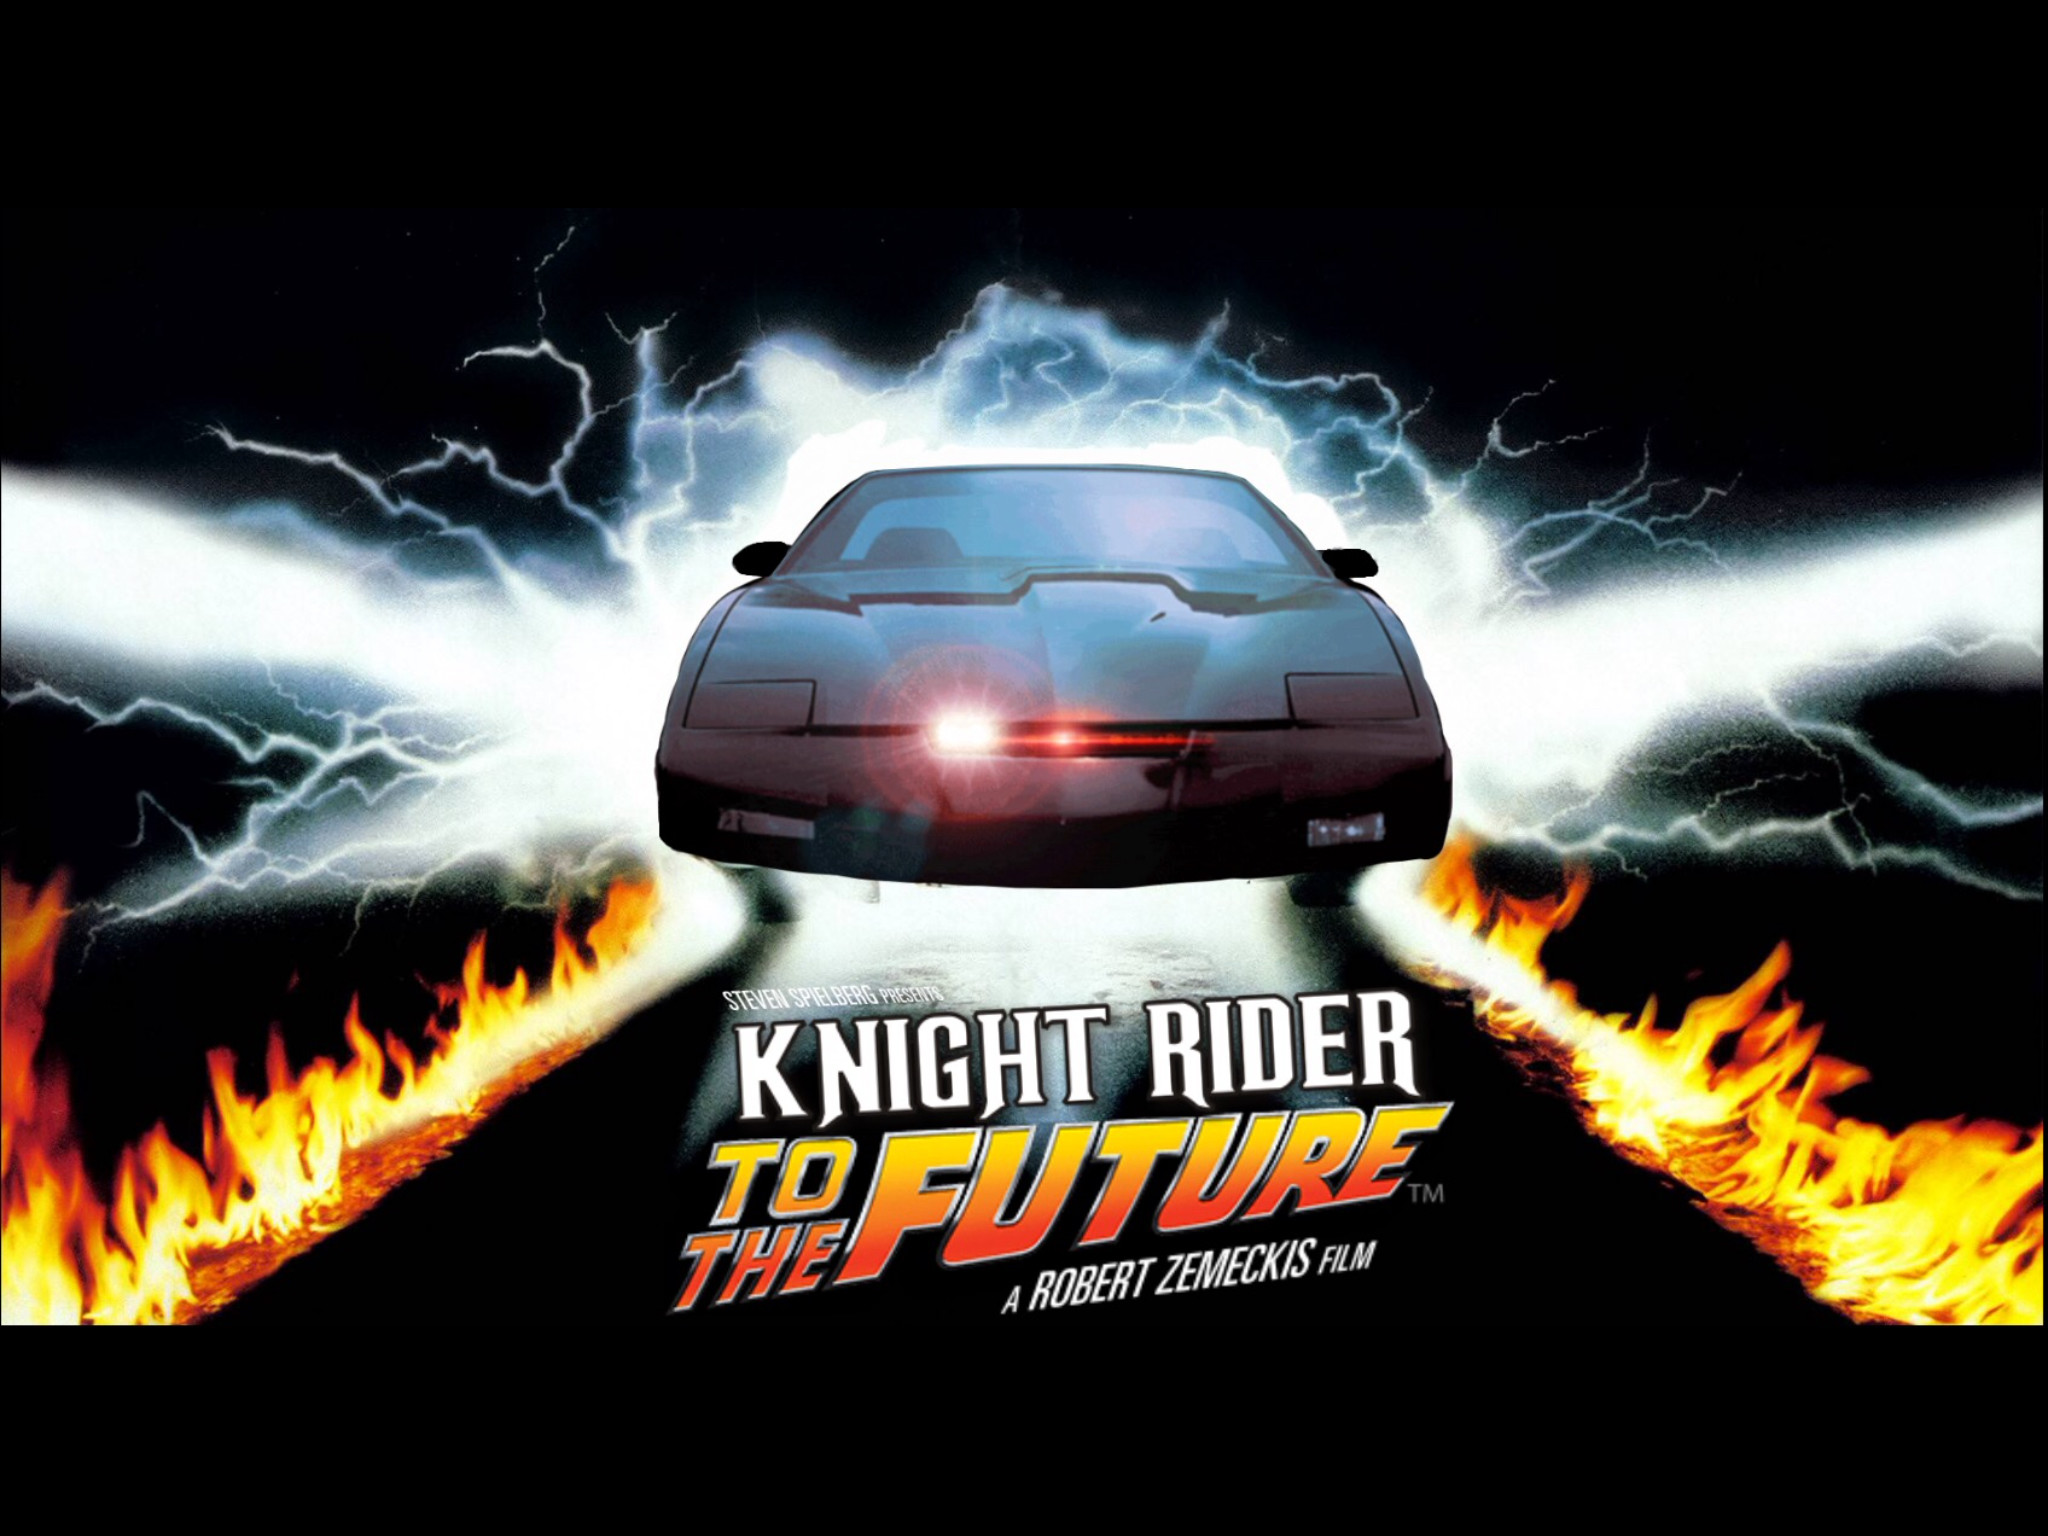 2048x1536 Knight Rider / Back to the Future Mashup